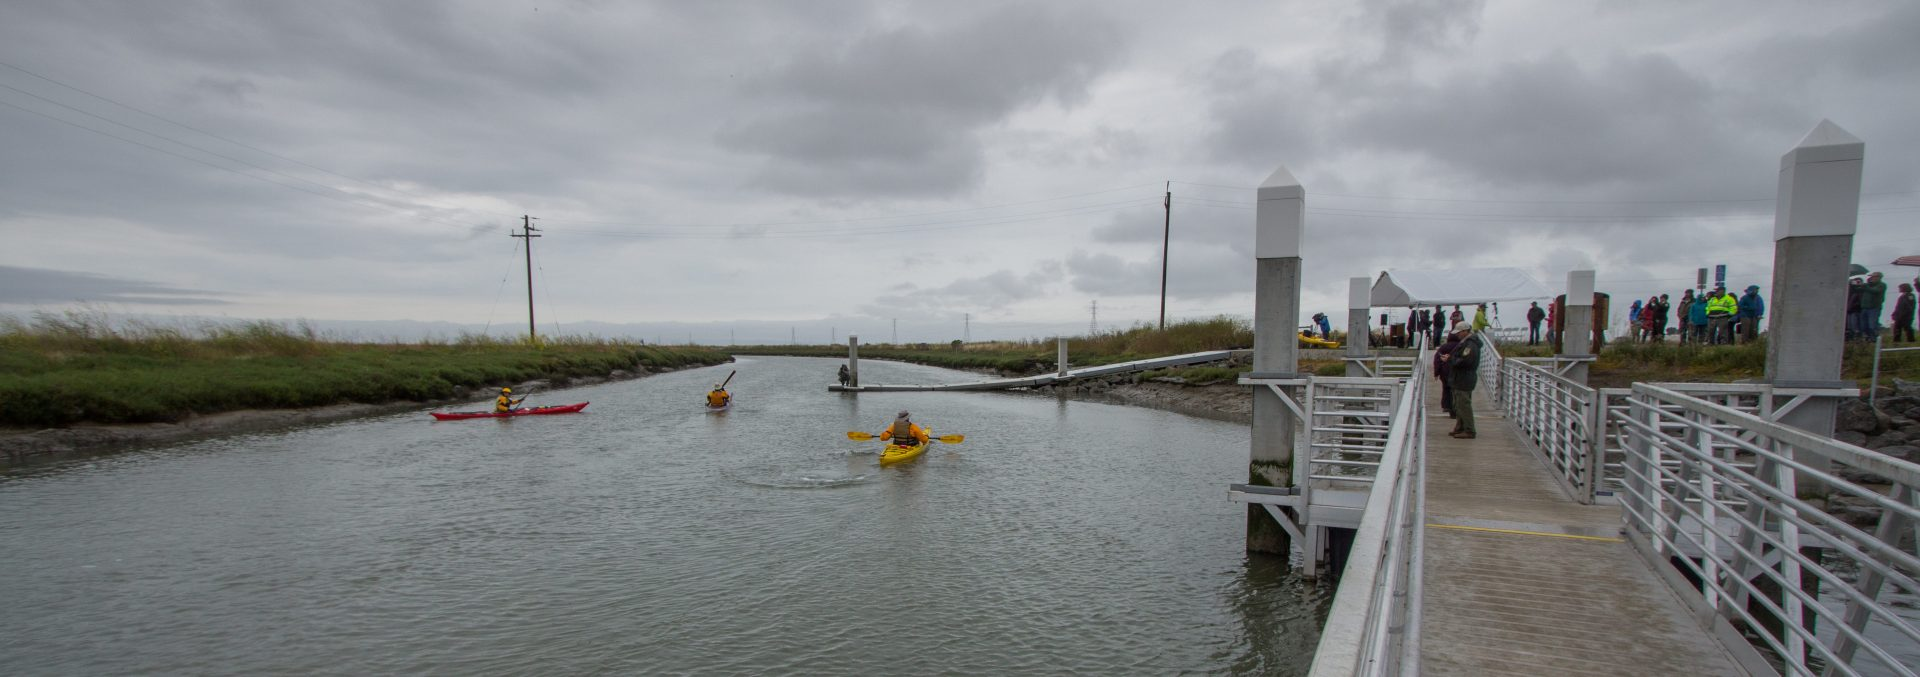 Kayakers on left in water, with people on piers and dock on right